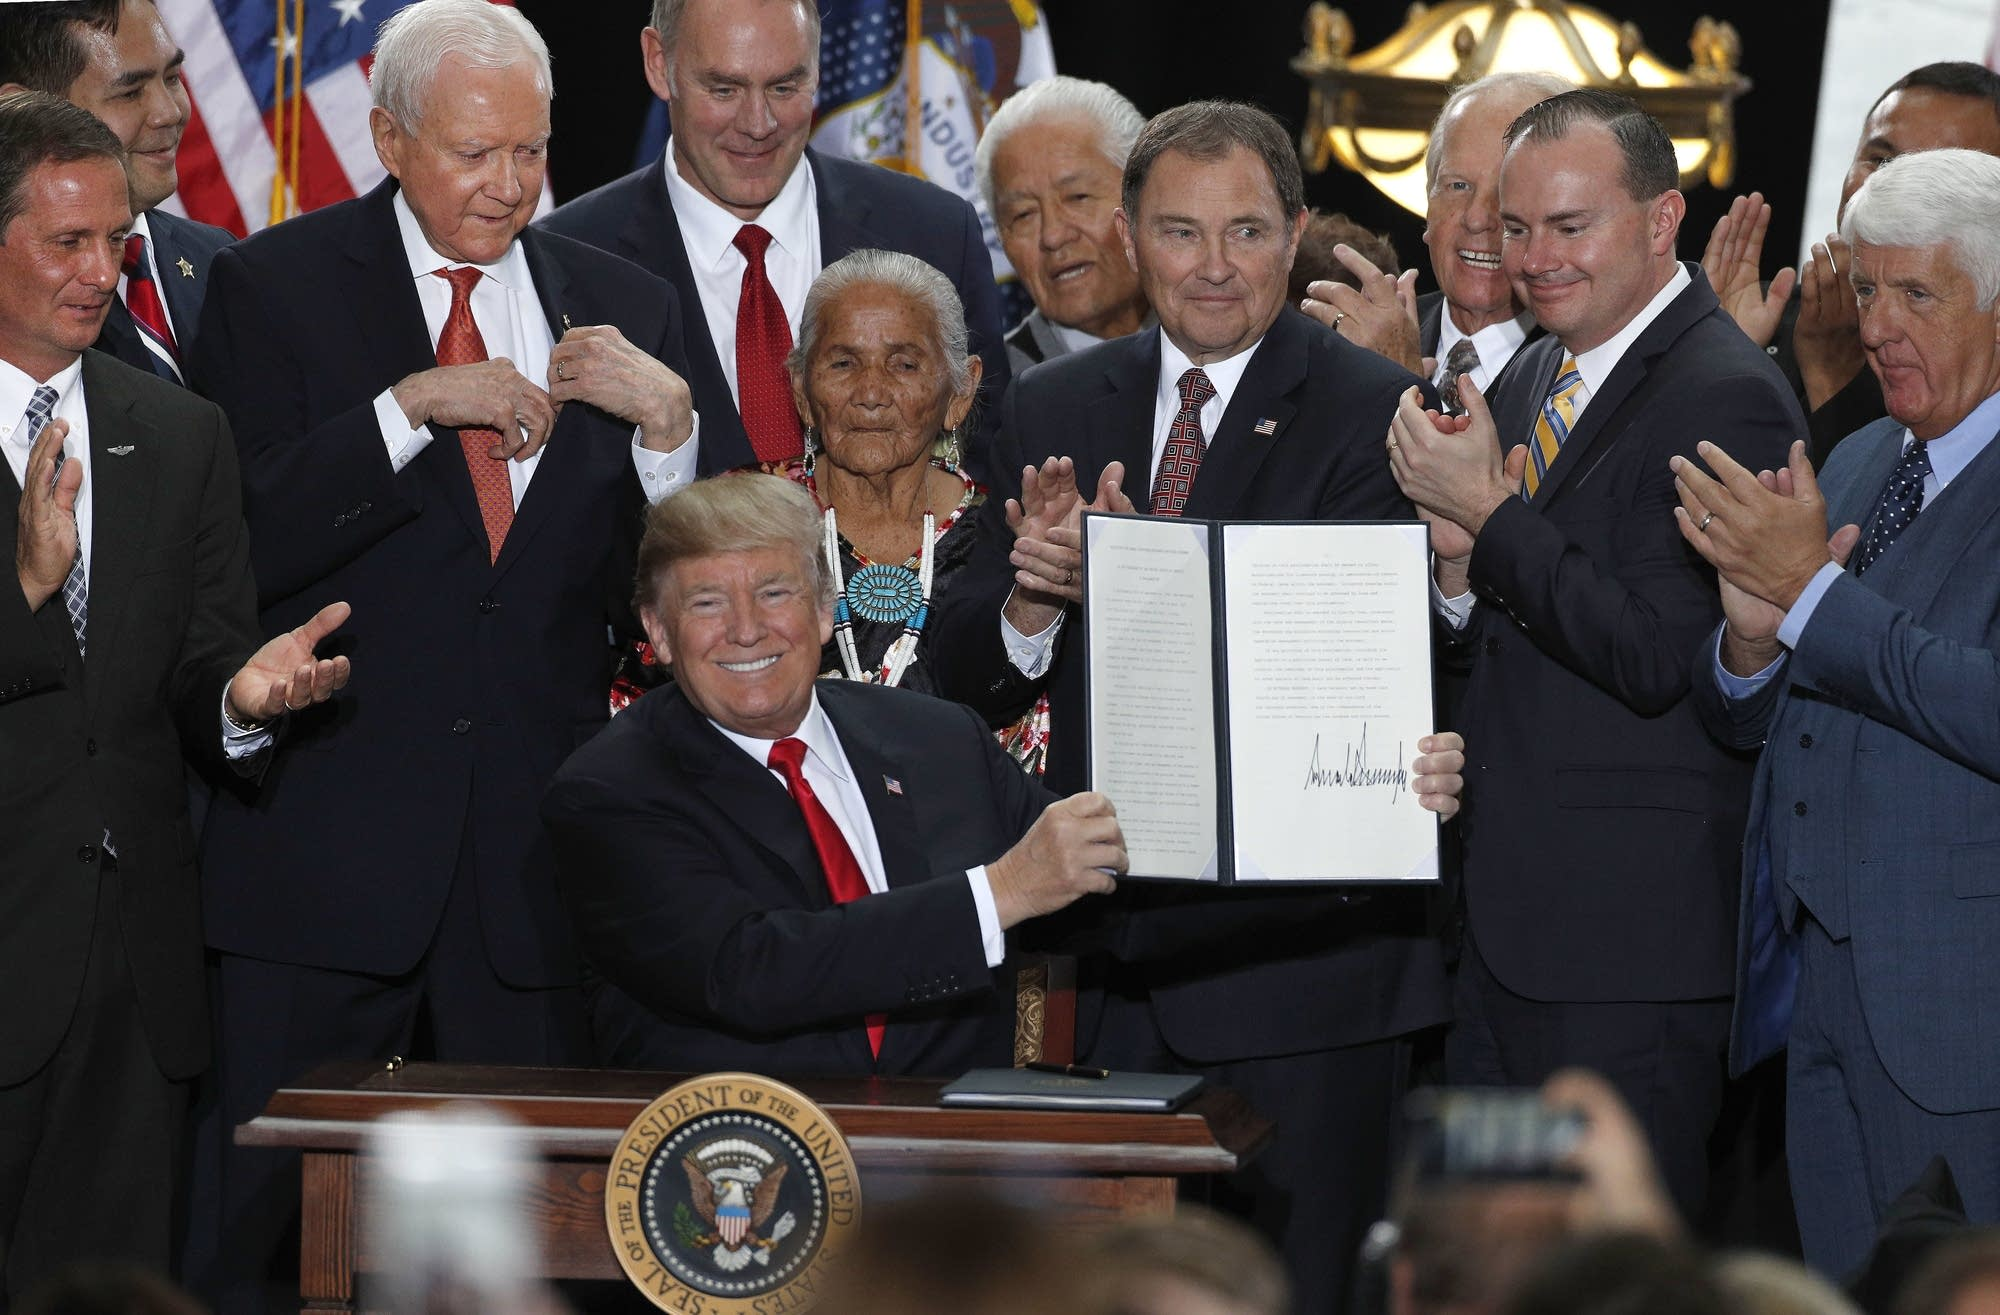 Trump shows an executive order he signed reducing national monuments.